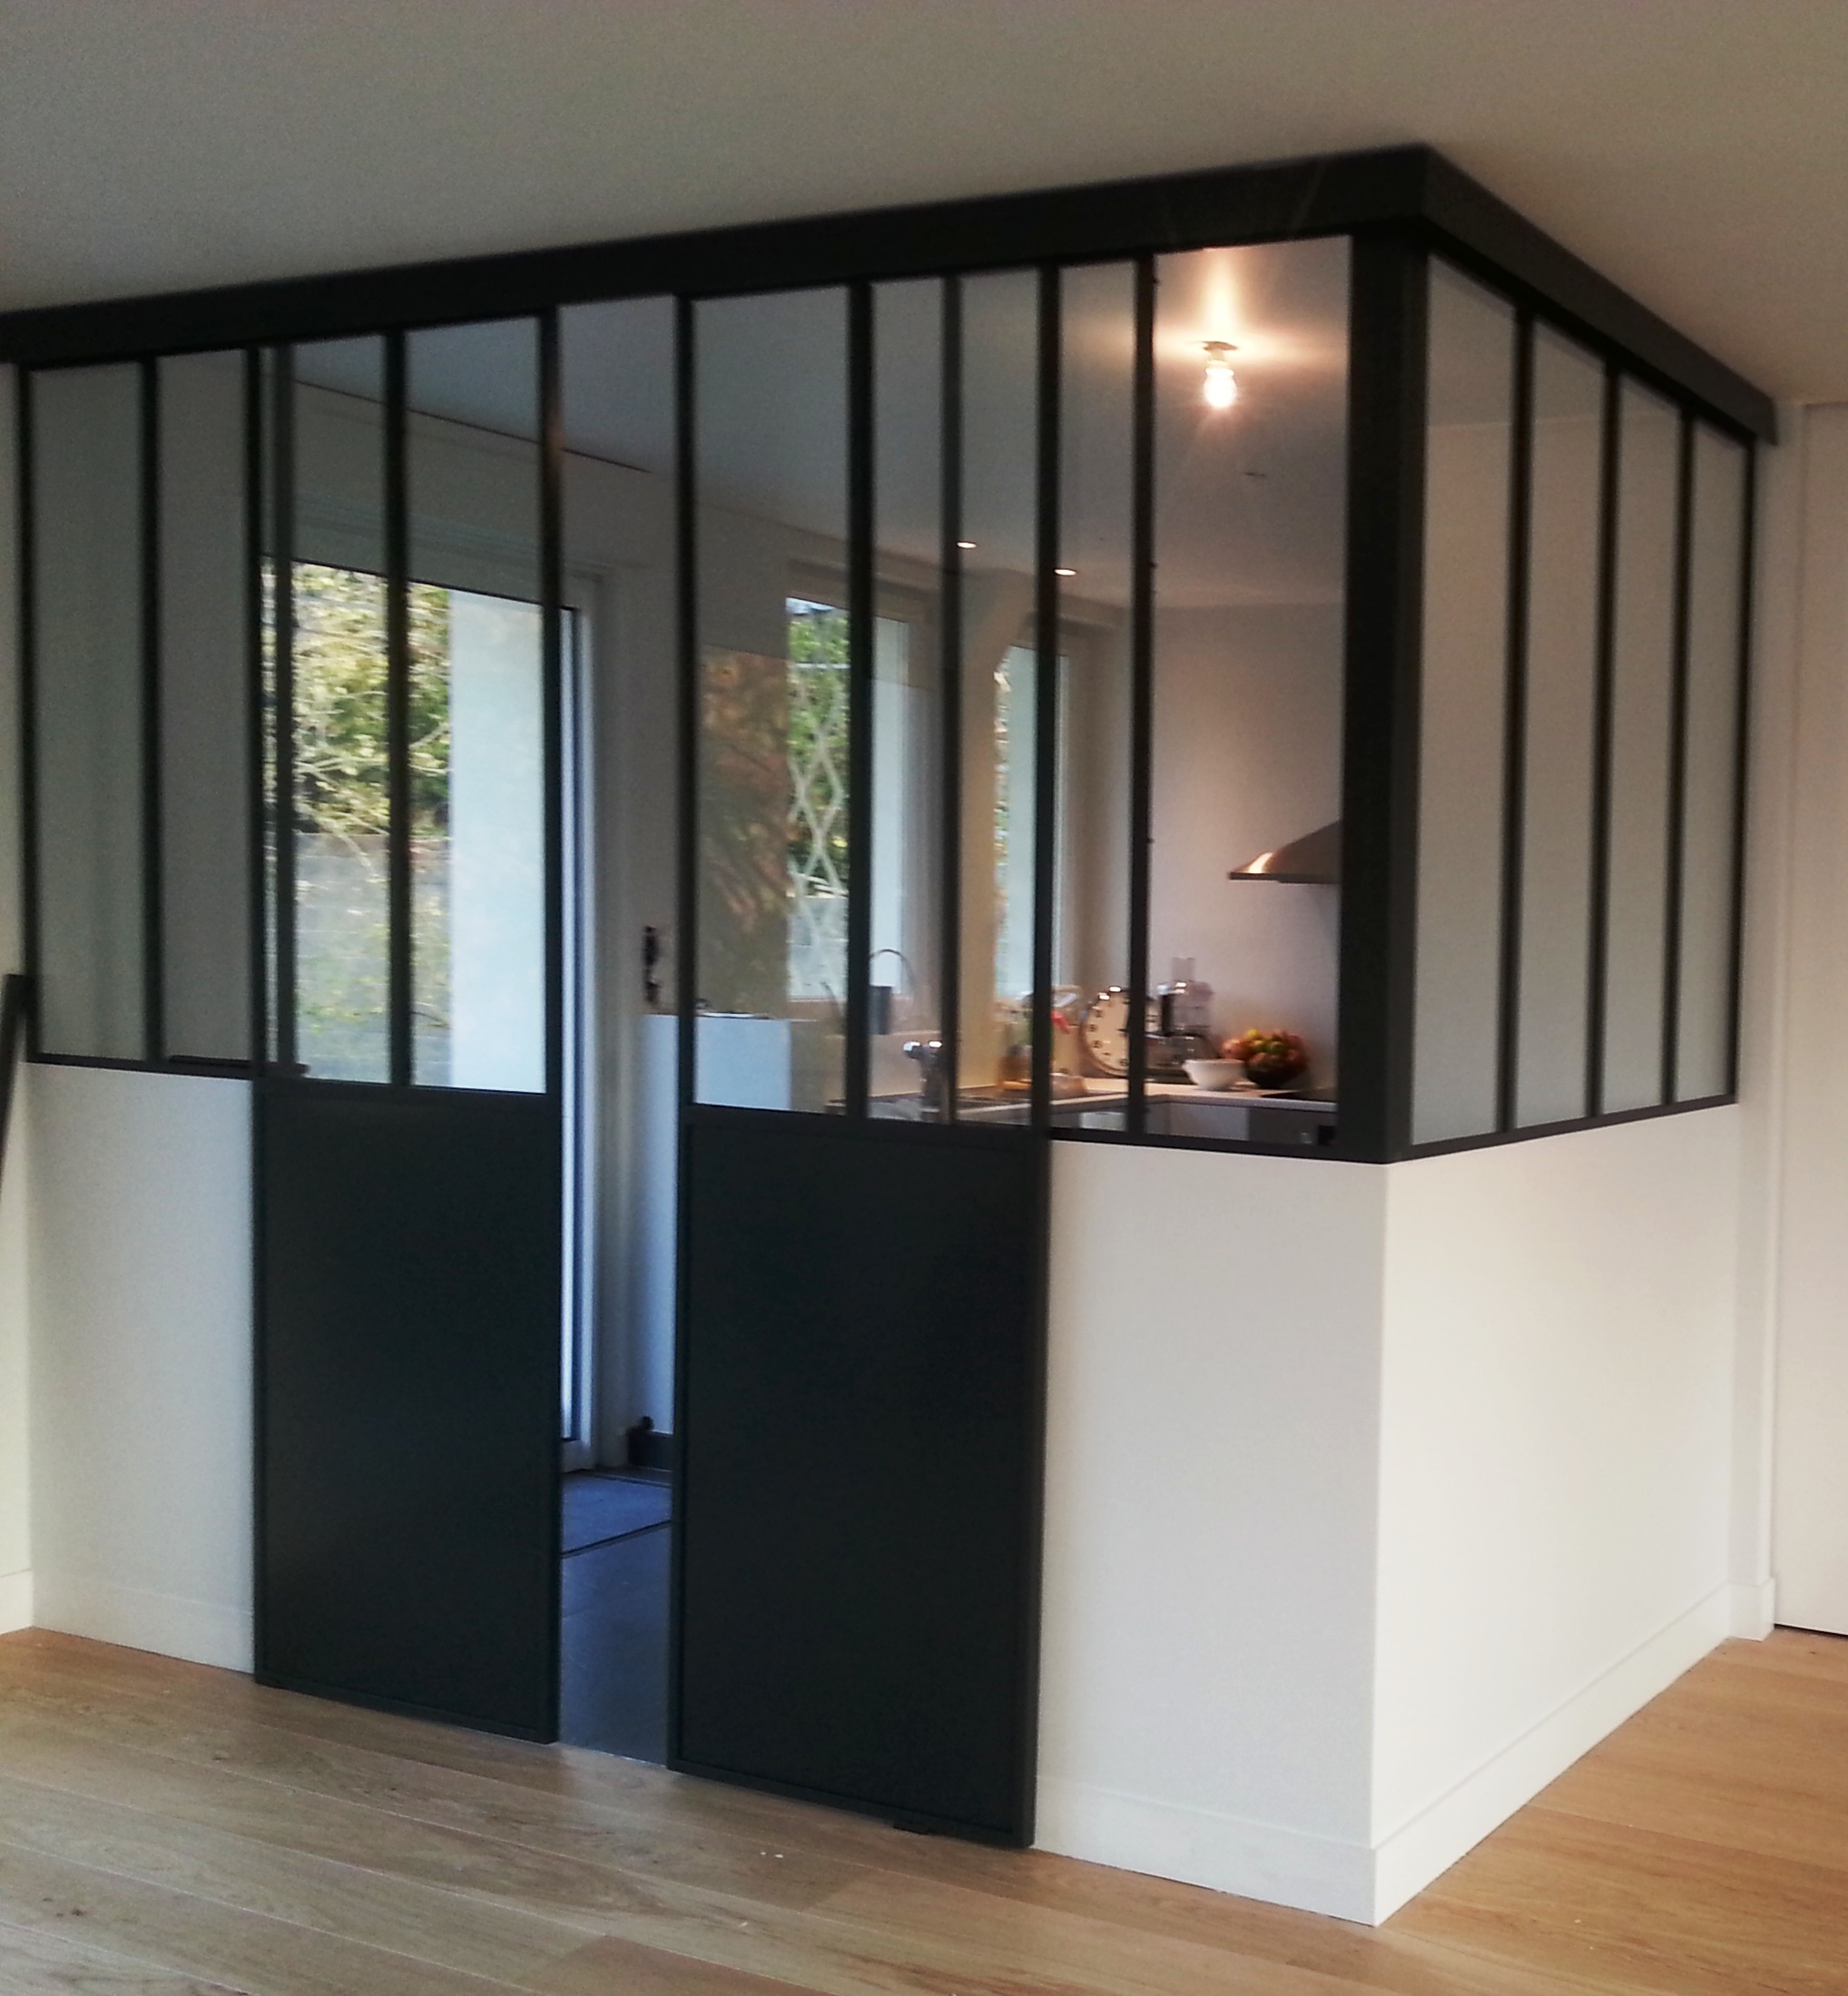 Installation thermique dimension porte coulissante for Dimension porte standard interieur